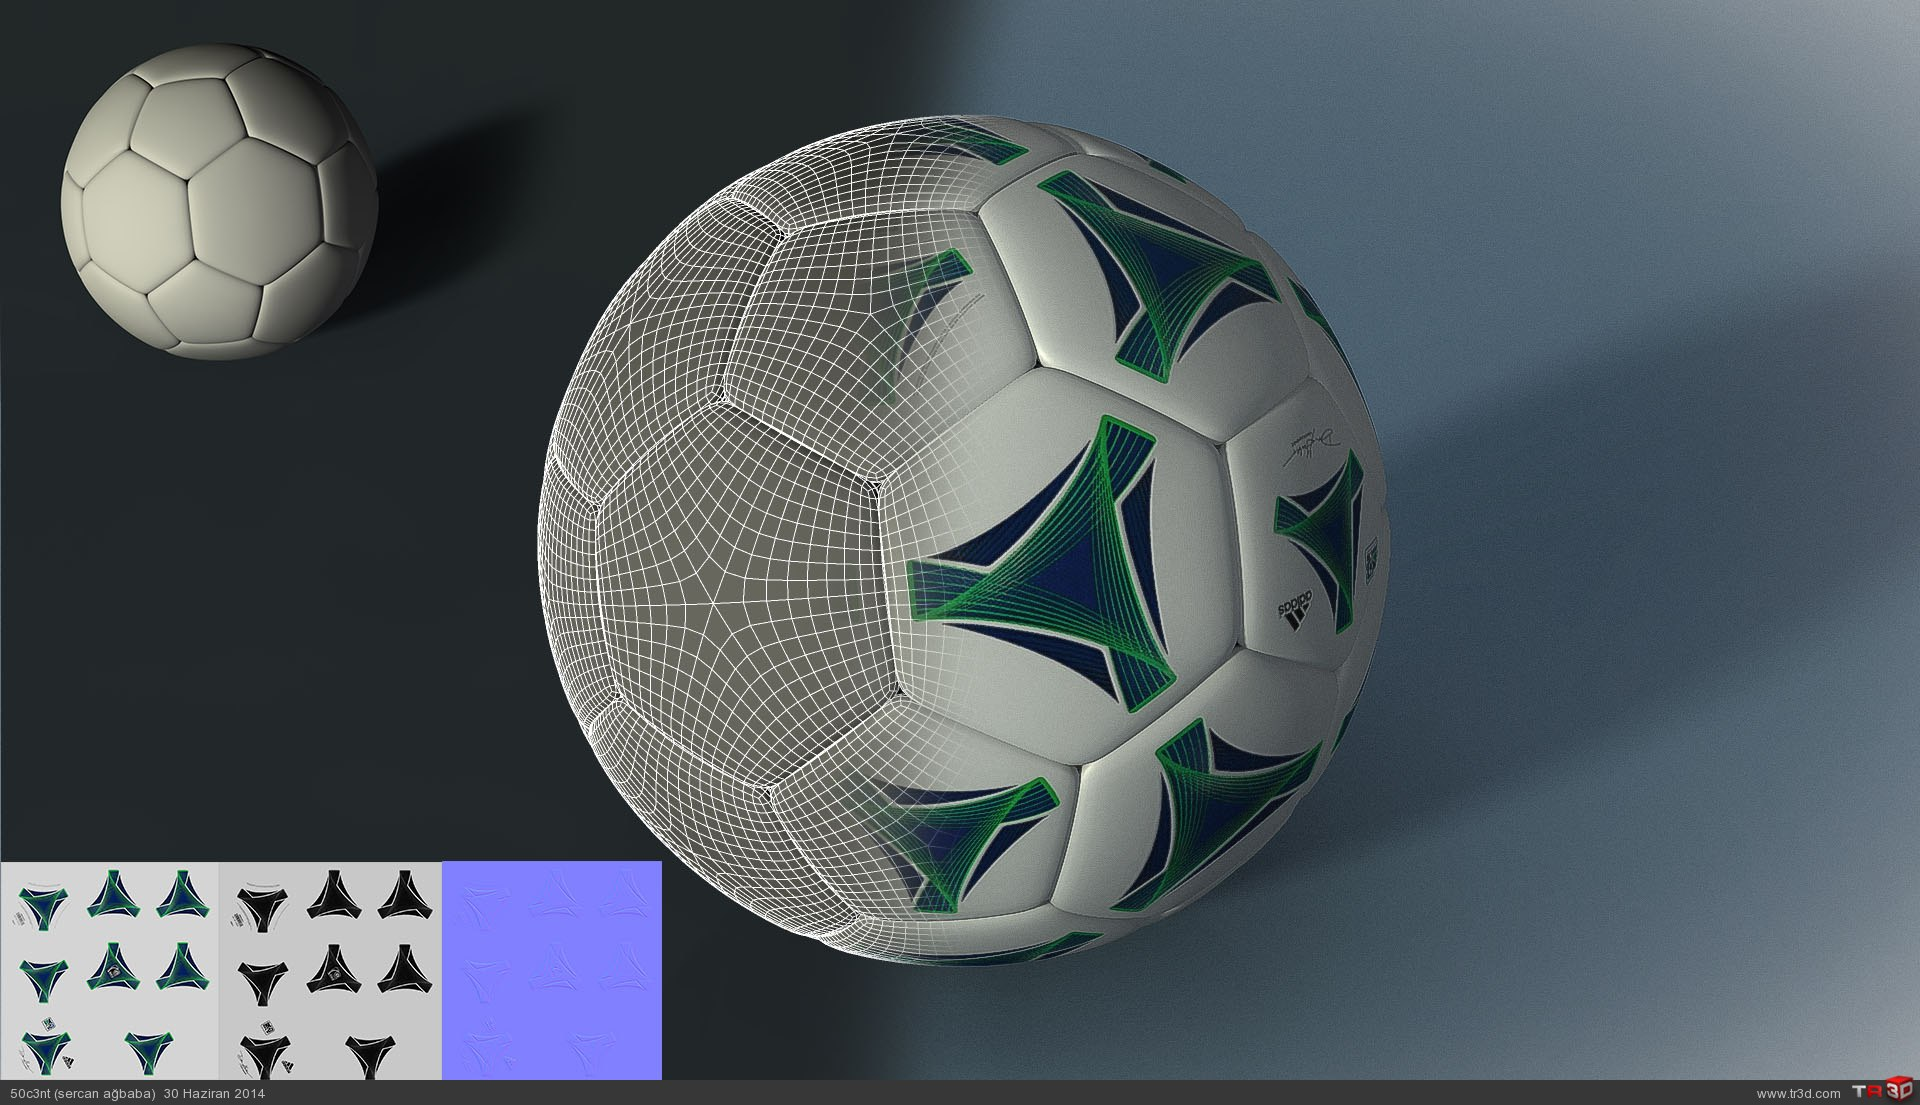 Ball and Water Tower 1